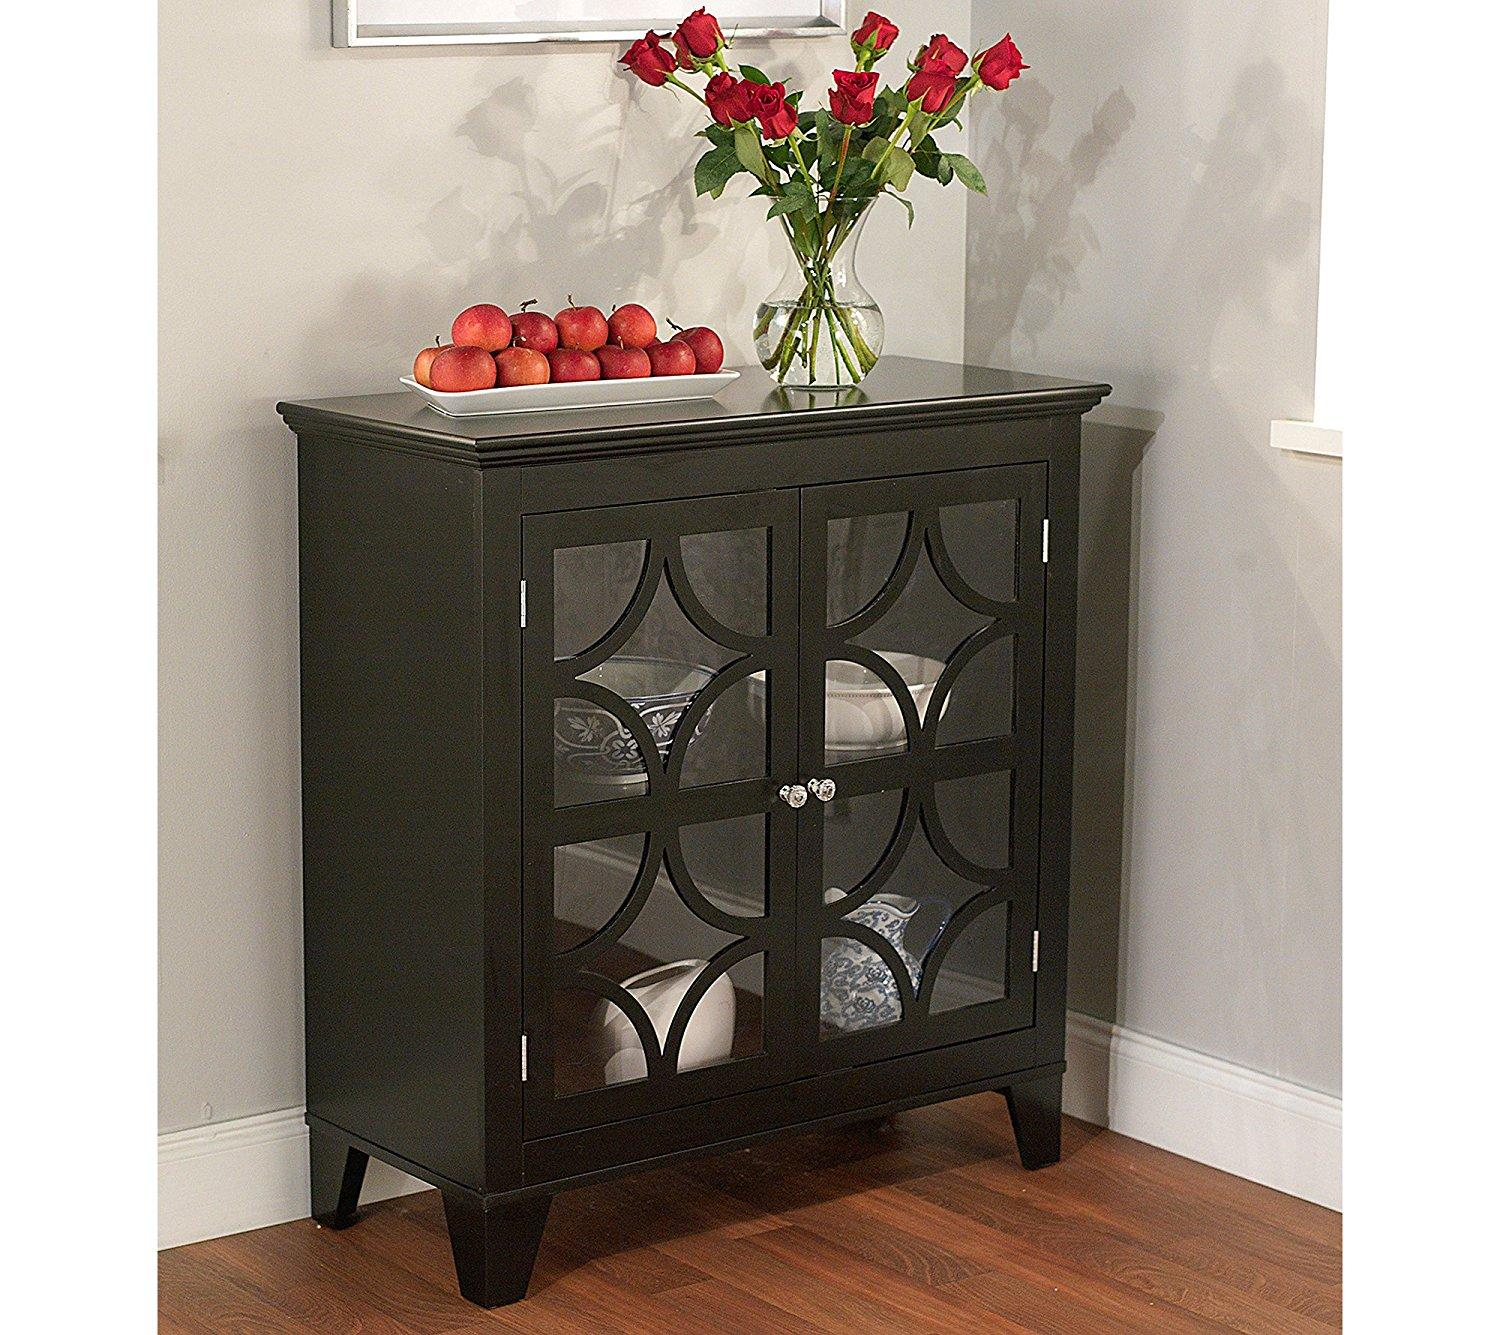 Kitchen Storage Cabinets With Glass Doors: Amazon.com: Target Marketing Systems Sydney Accent Storage